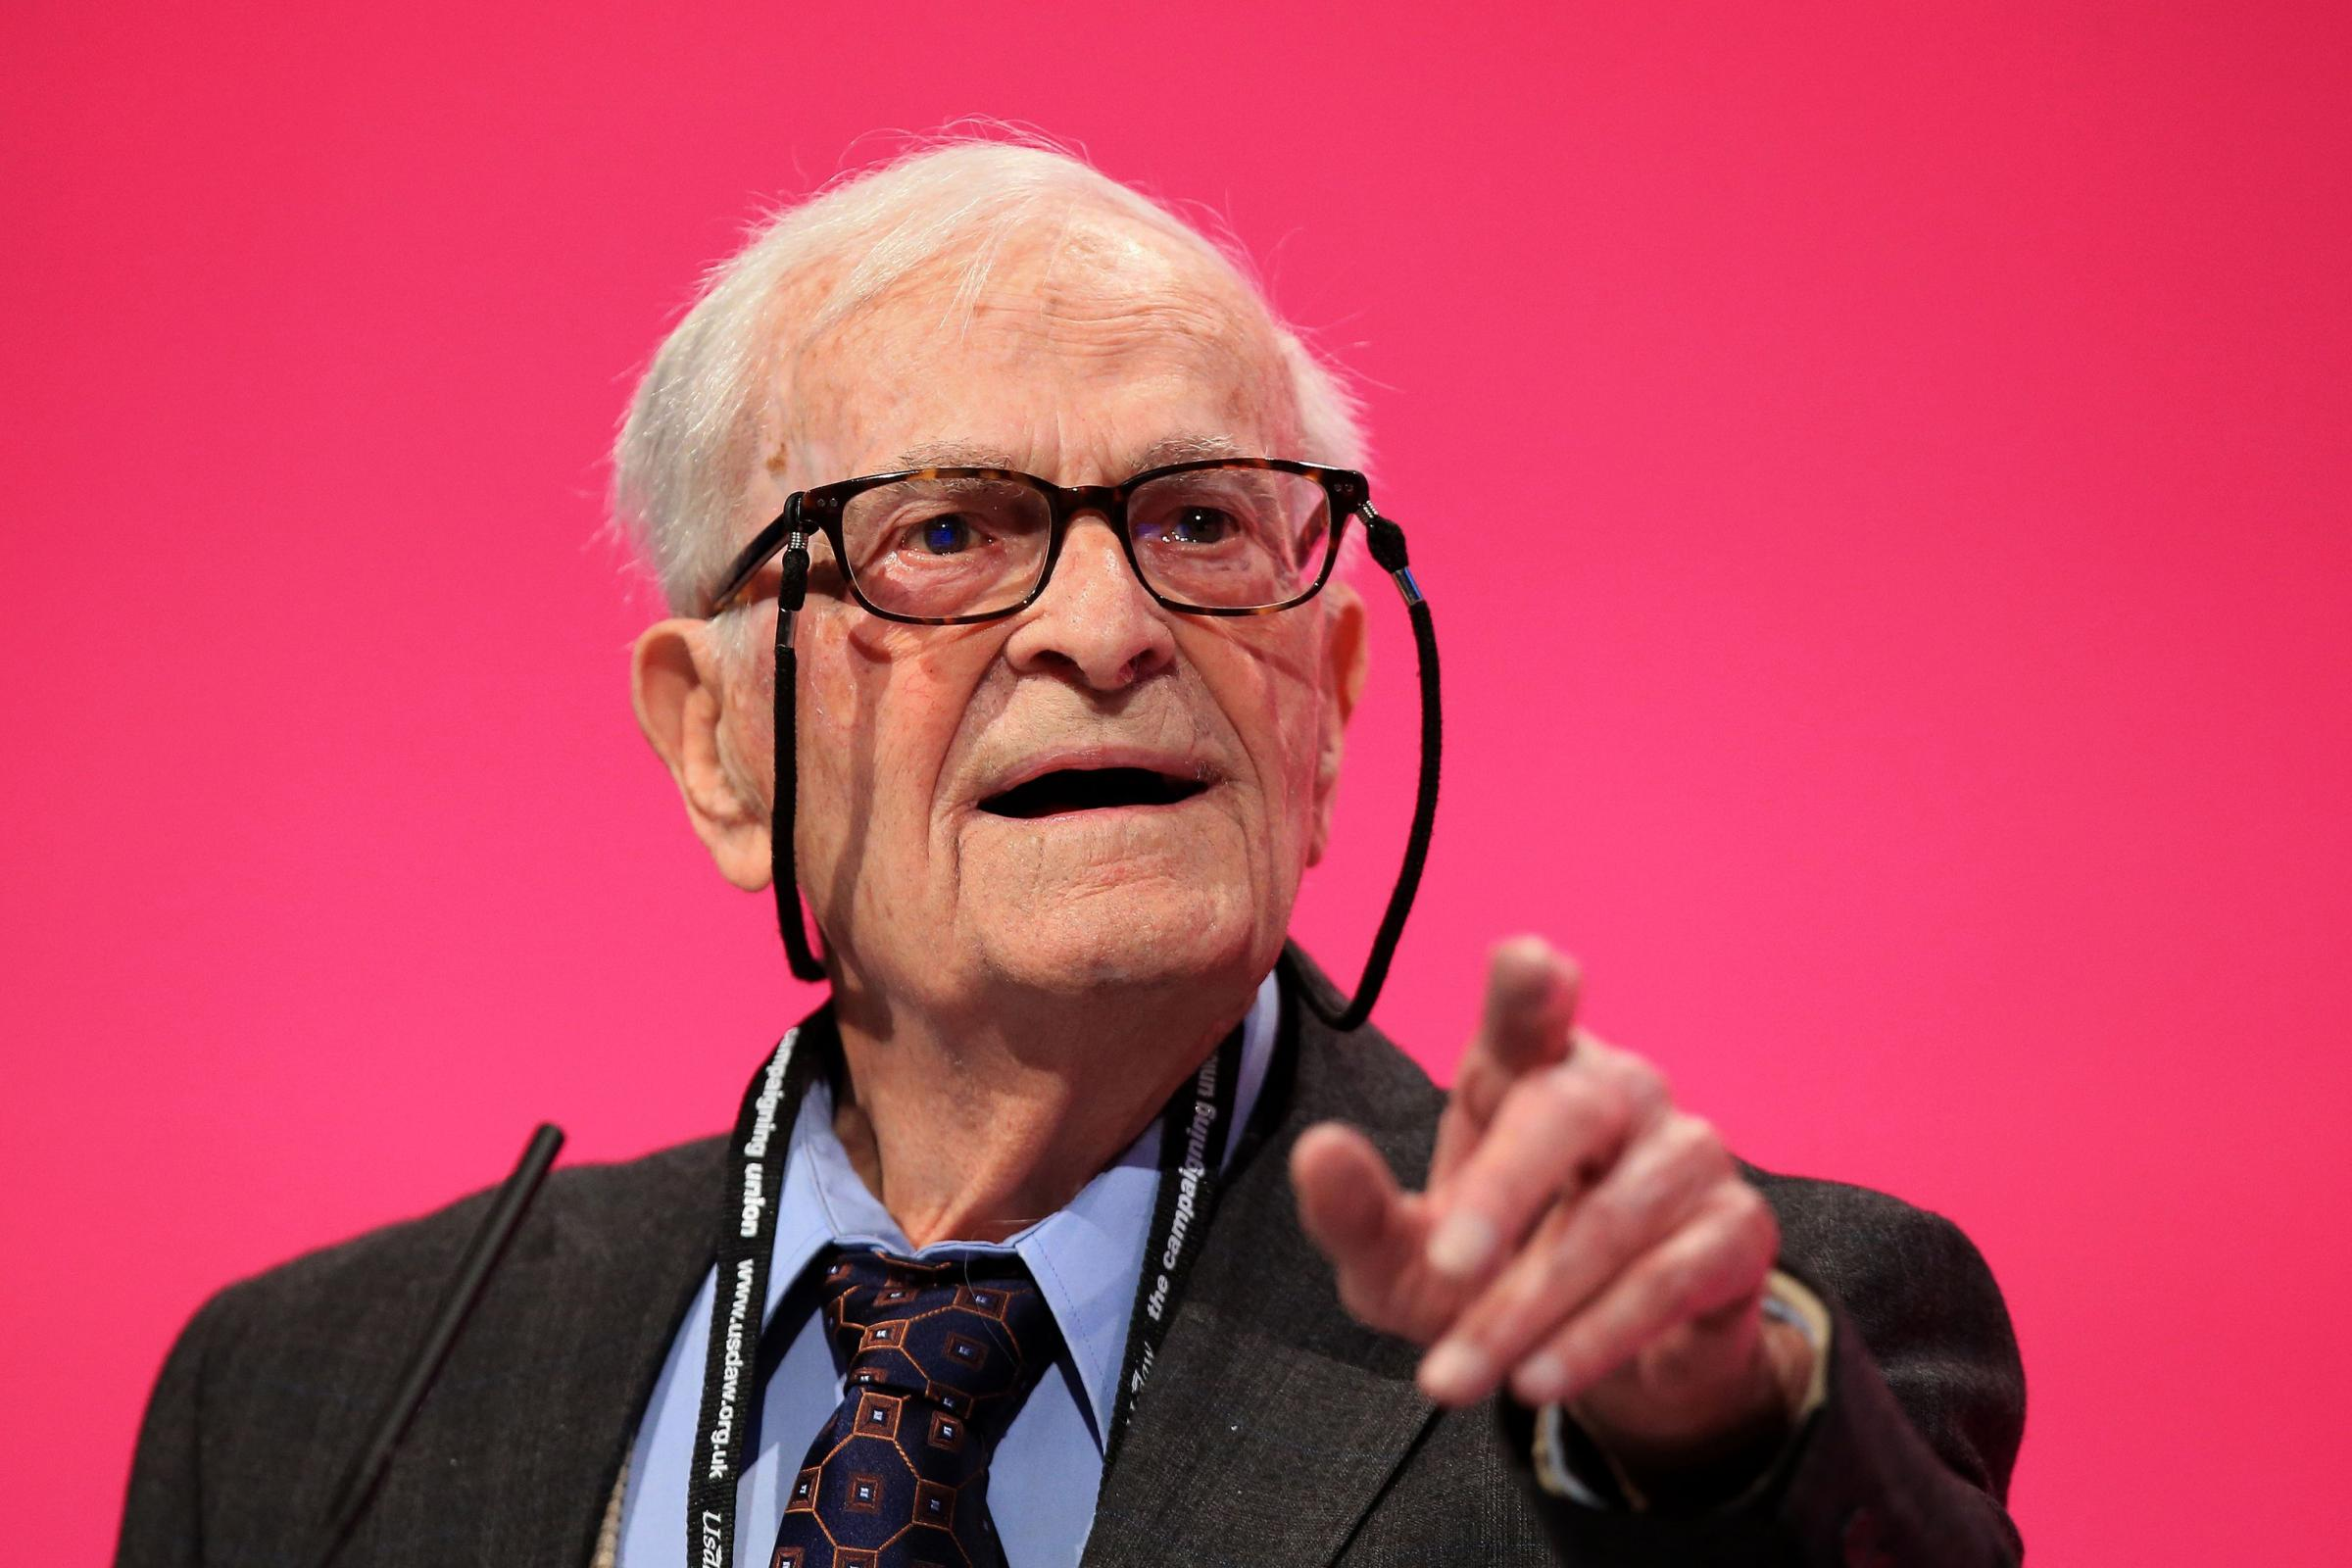 IMG HARRY LESLIE SMITH, British Writer and Political Commentator